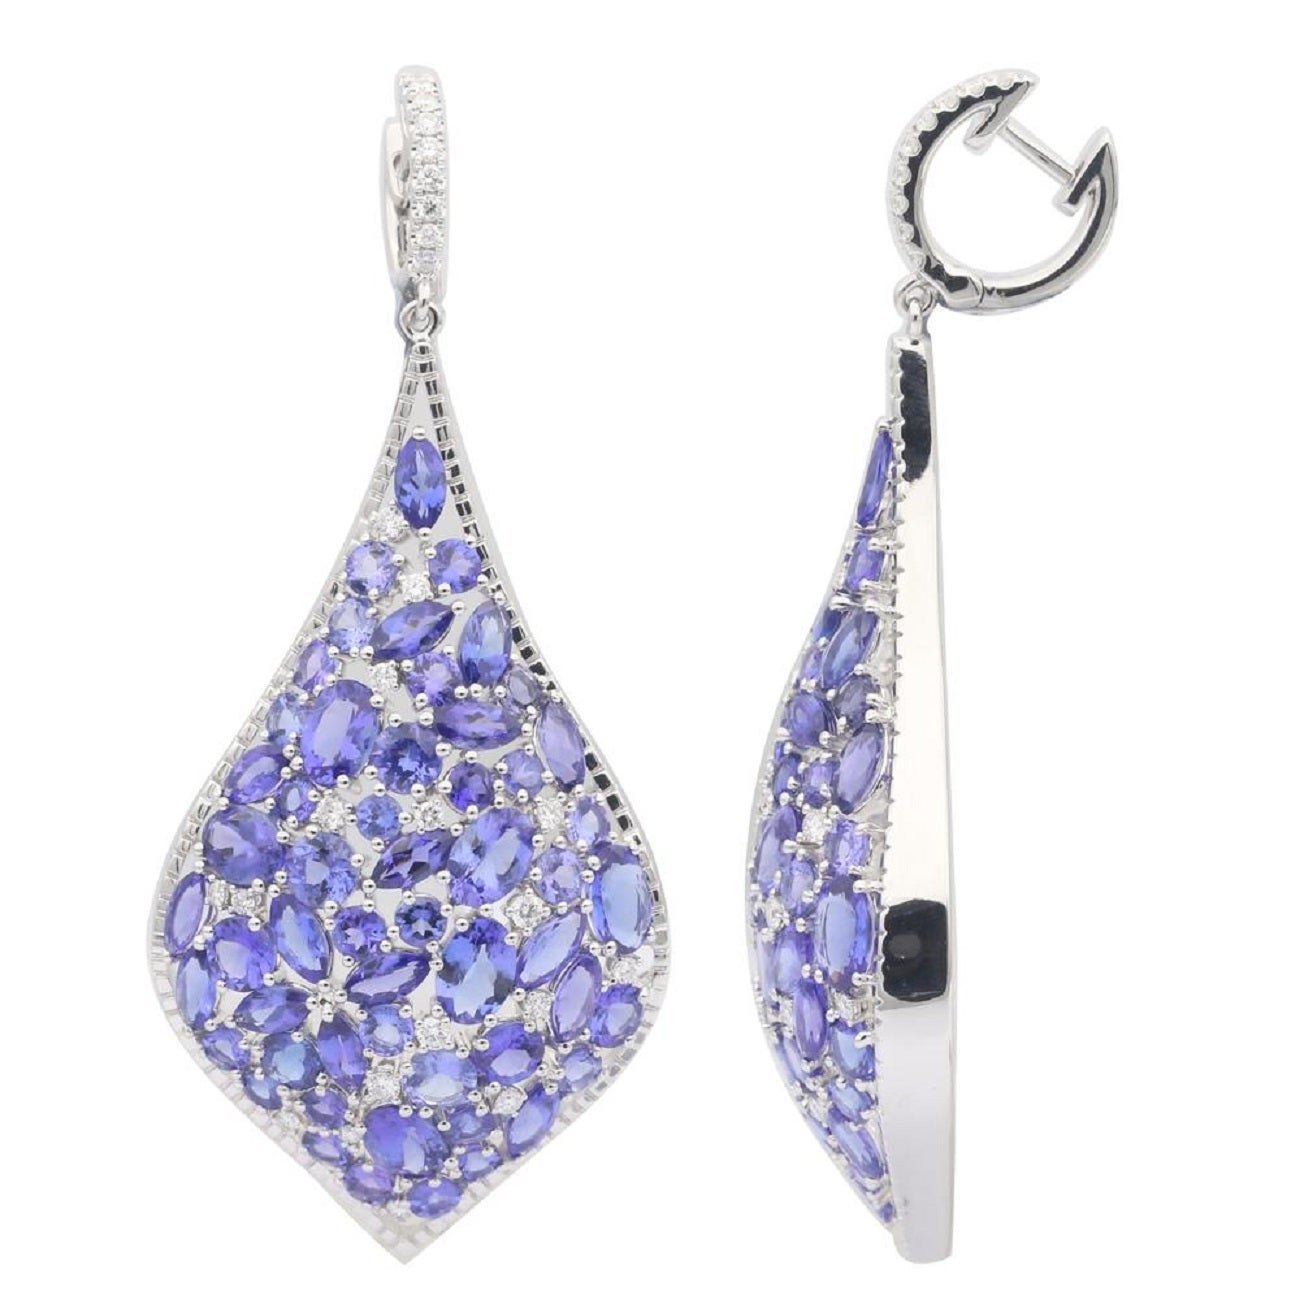 Mixed Shapes Tanzanite and Diamond Dangle Drop Earrings 25.63 Carat